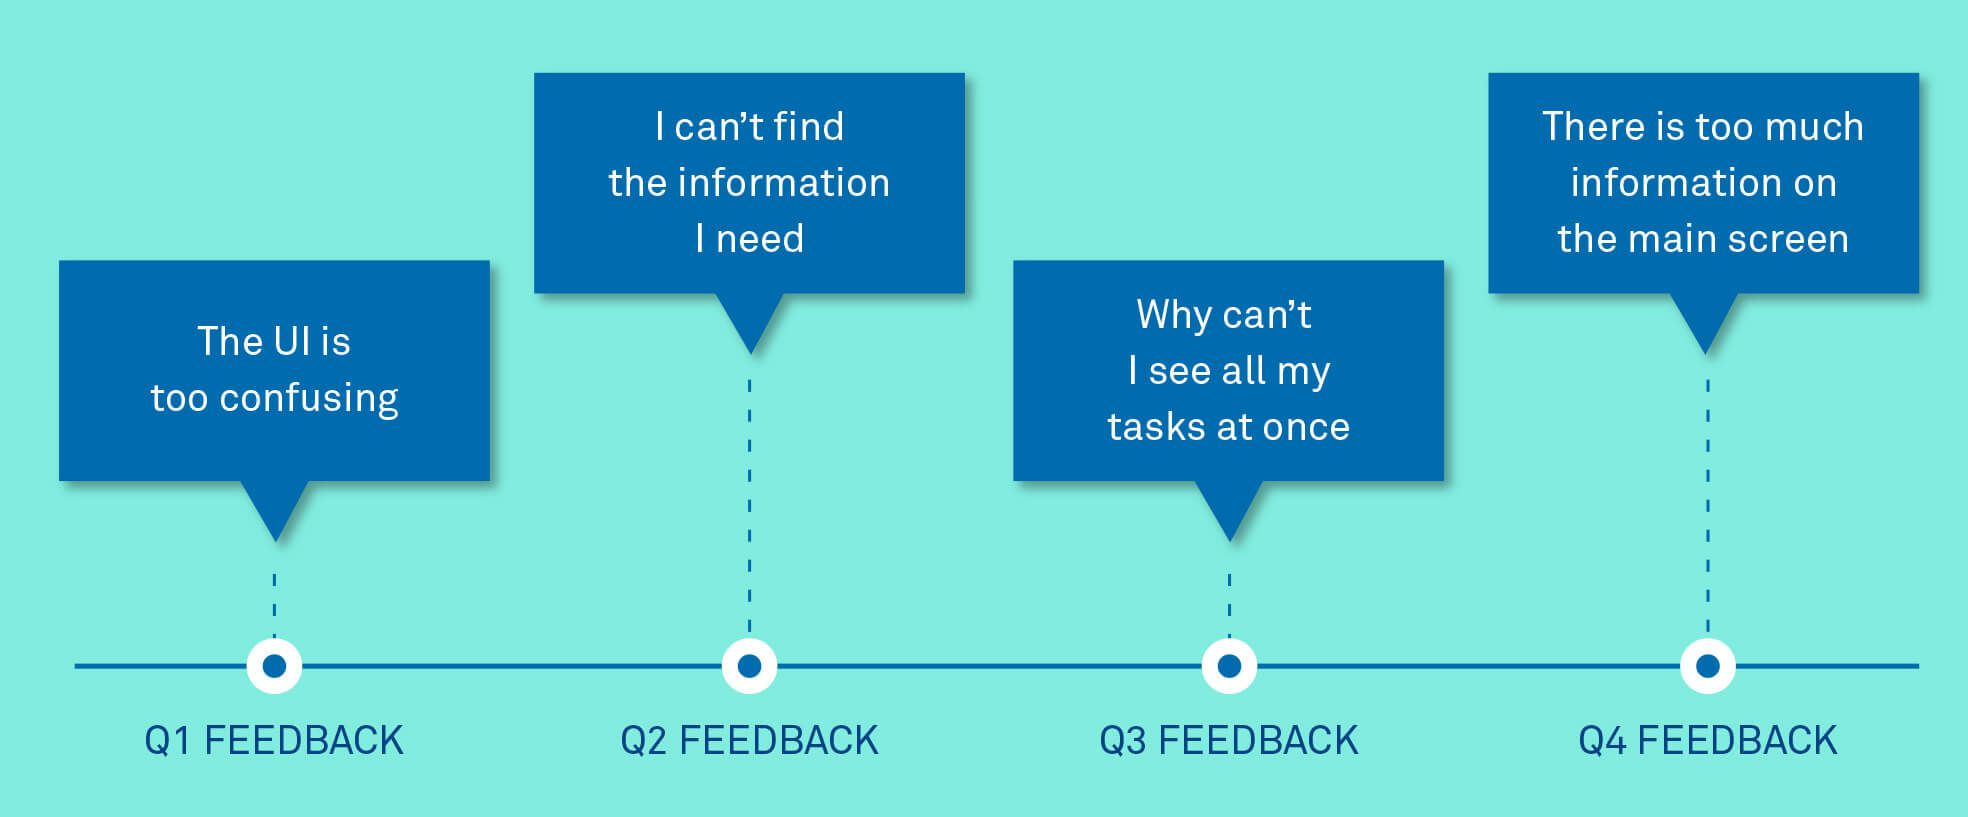 Repetition of feedback